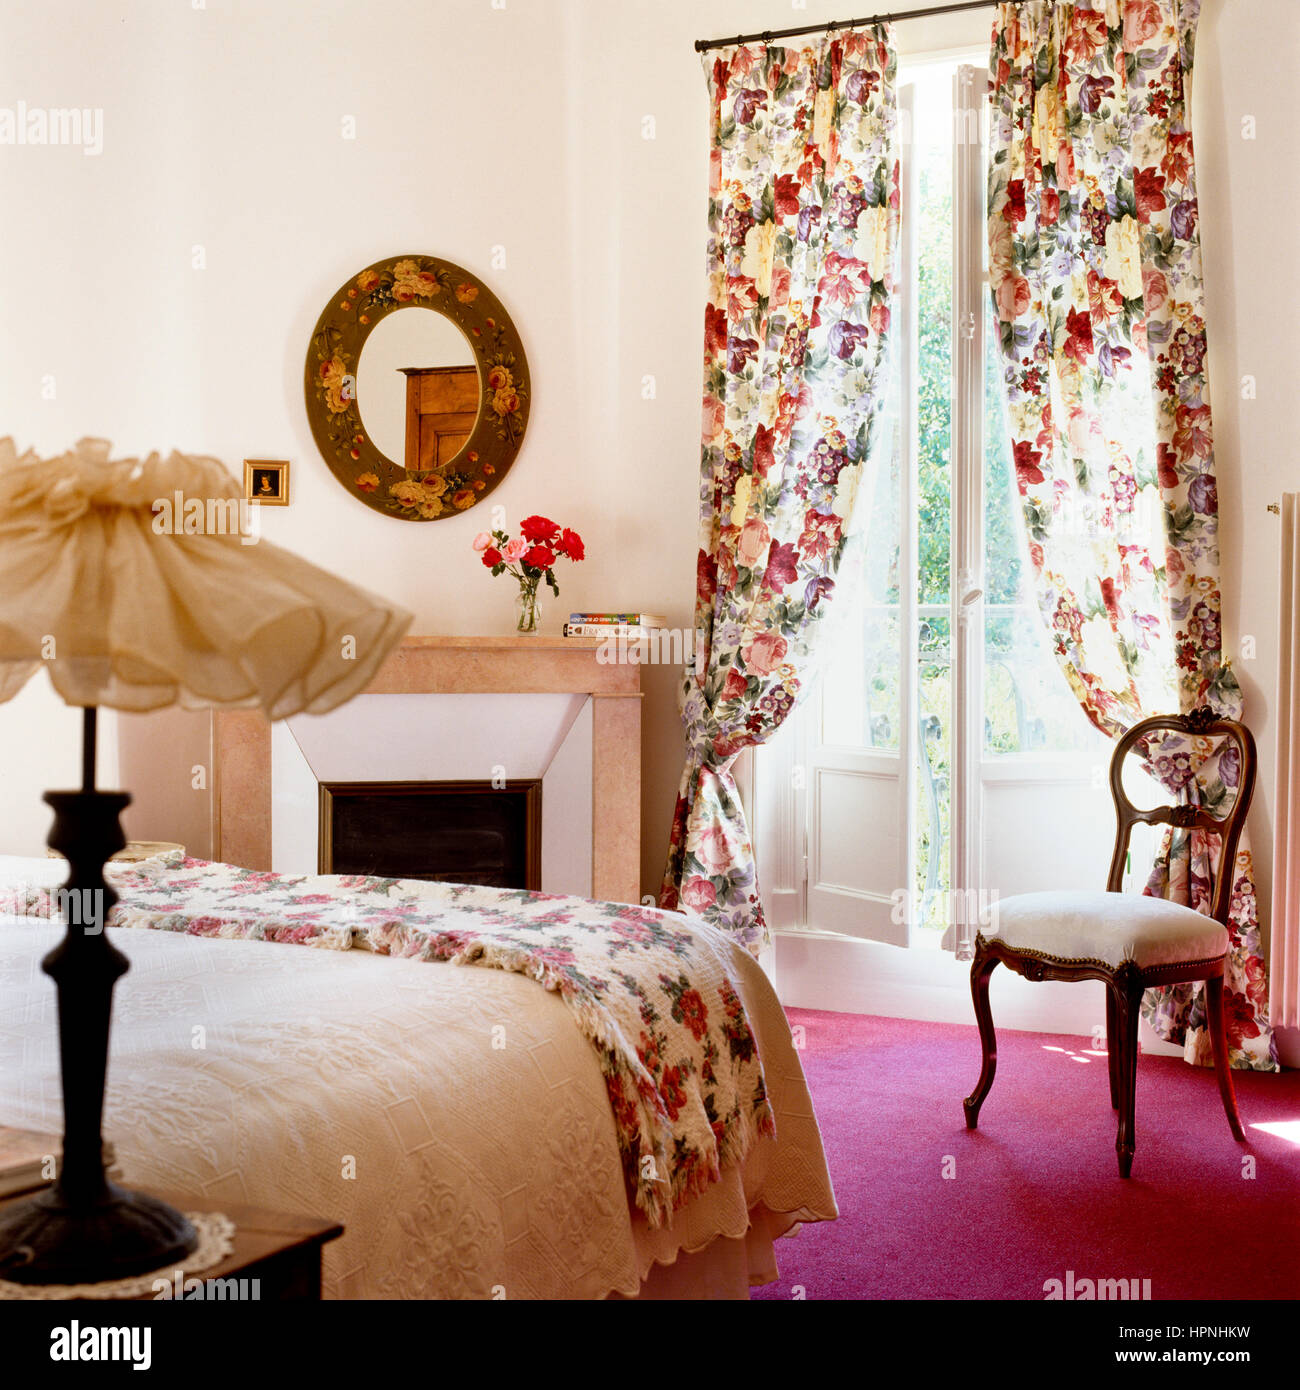 A bedroom with floral patterns. - Stock Image